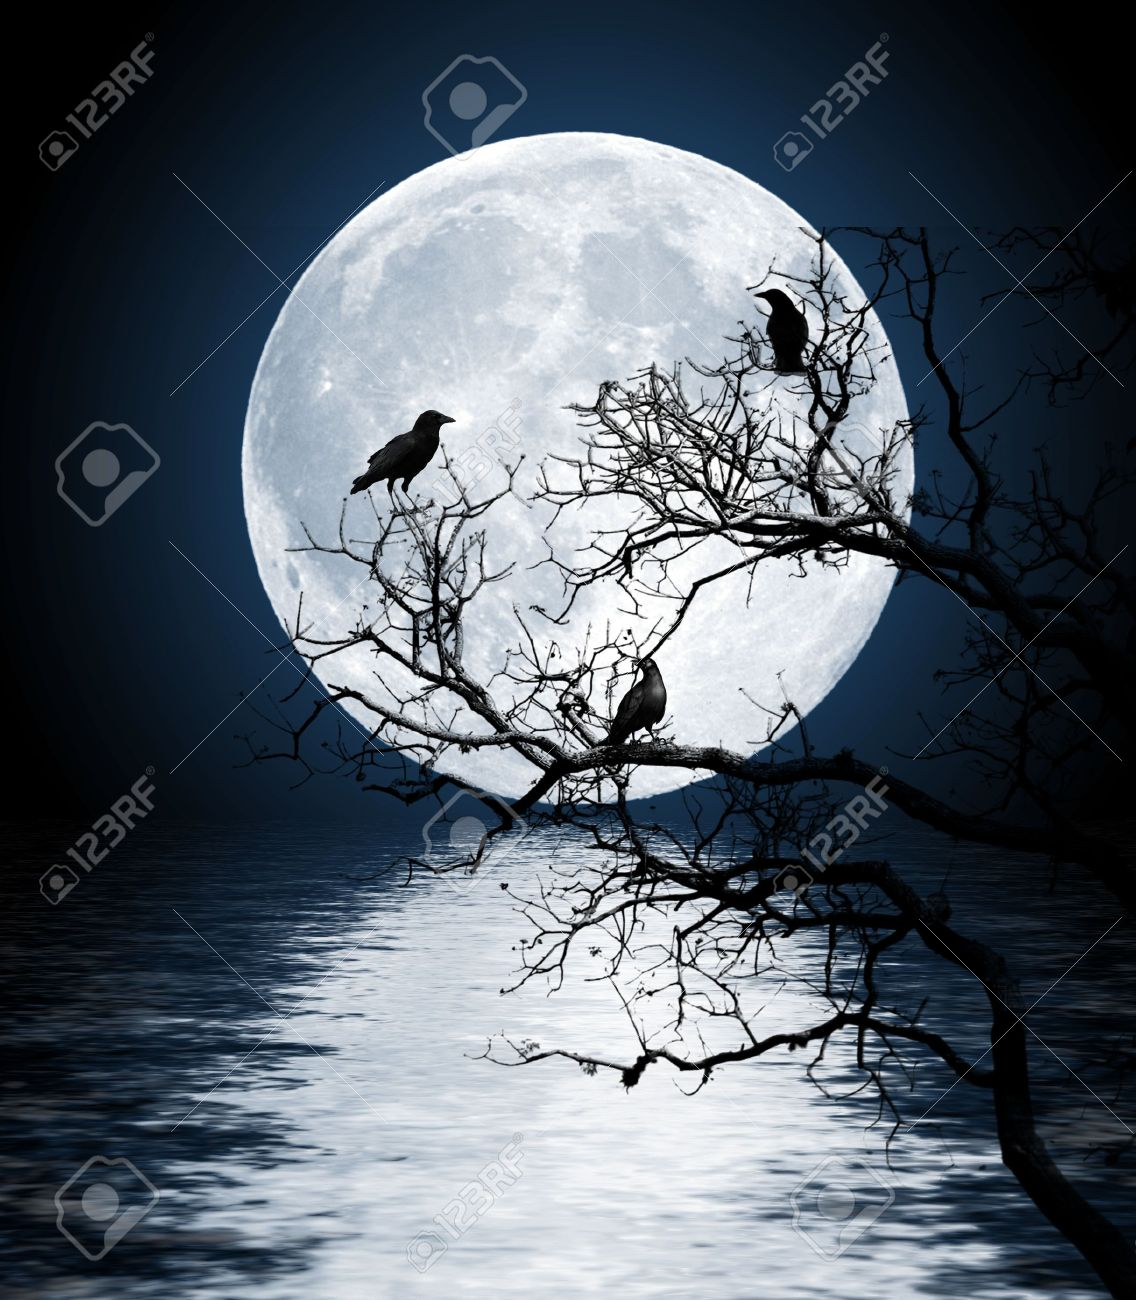 Ravens sitting on a tree shined with the full moon Stock Photo - 7258393